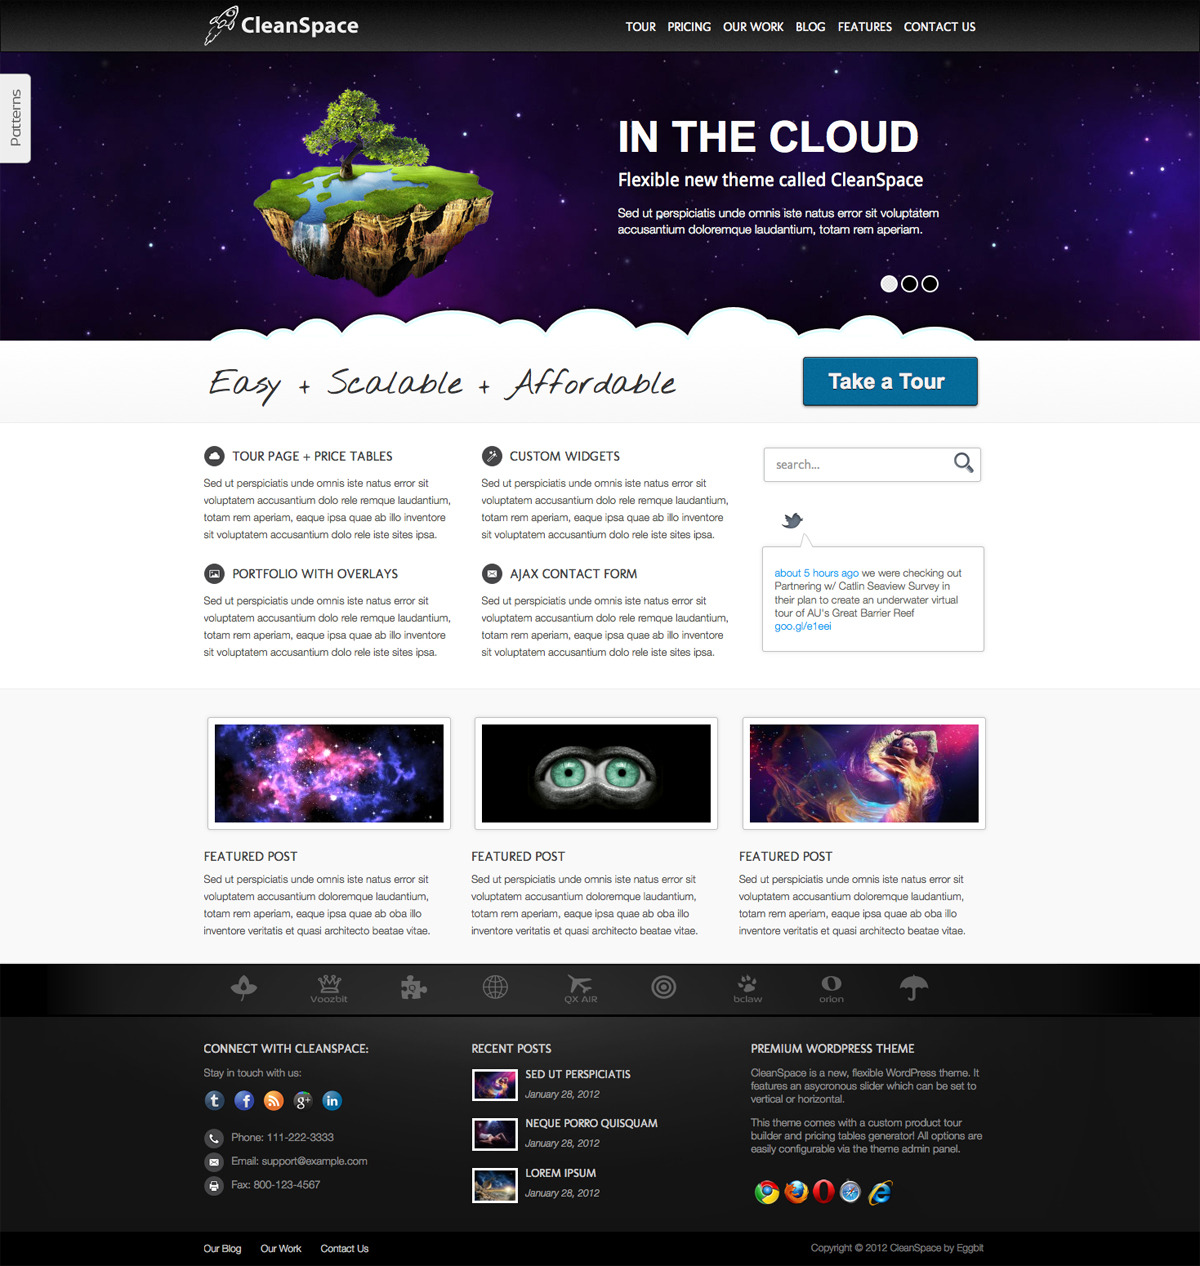 CleanSpace WordPress Theme - {\rtf1\ansi\ansicpg1252\cocoartf1038\cocoasubrtf360 {\fonttbl\f0\fswiss\fcharset0 Helvetica;} {\colortbl;\red255\green255\blue255;} \margl1440\margr1440\vieww9000\viewh8400\viewkind0 \pard\tx566\tx1133\tx1700\tx2267\tx2834\tx3401\tx3968\tx4535\tx5102\tx5669\tx6236\tx6803\ql\qnatural\pardirnatural  \f0\fs24 \cf0 Screenshot of theme homepage featuring asynchronous slider.}